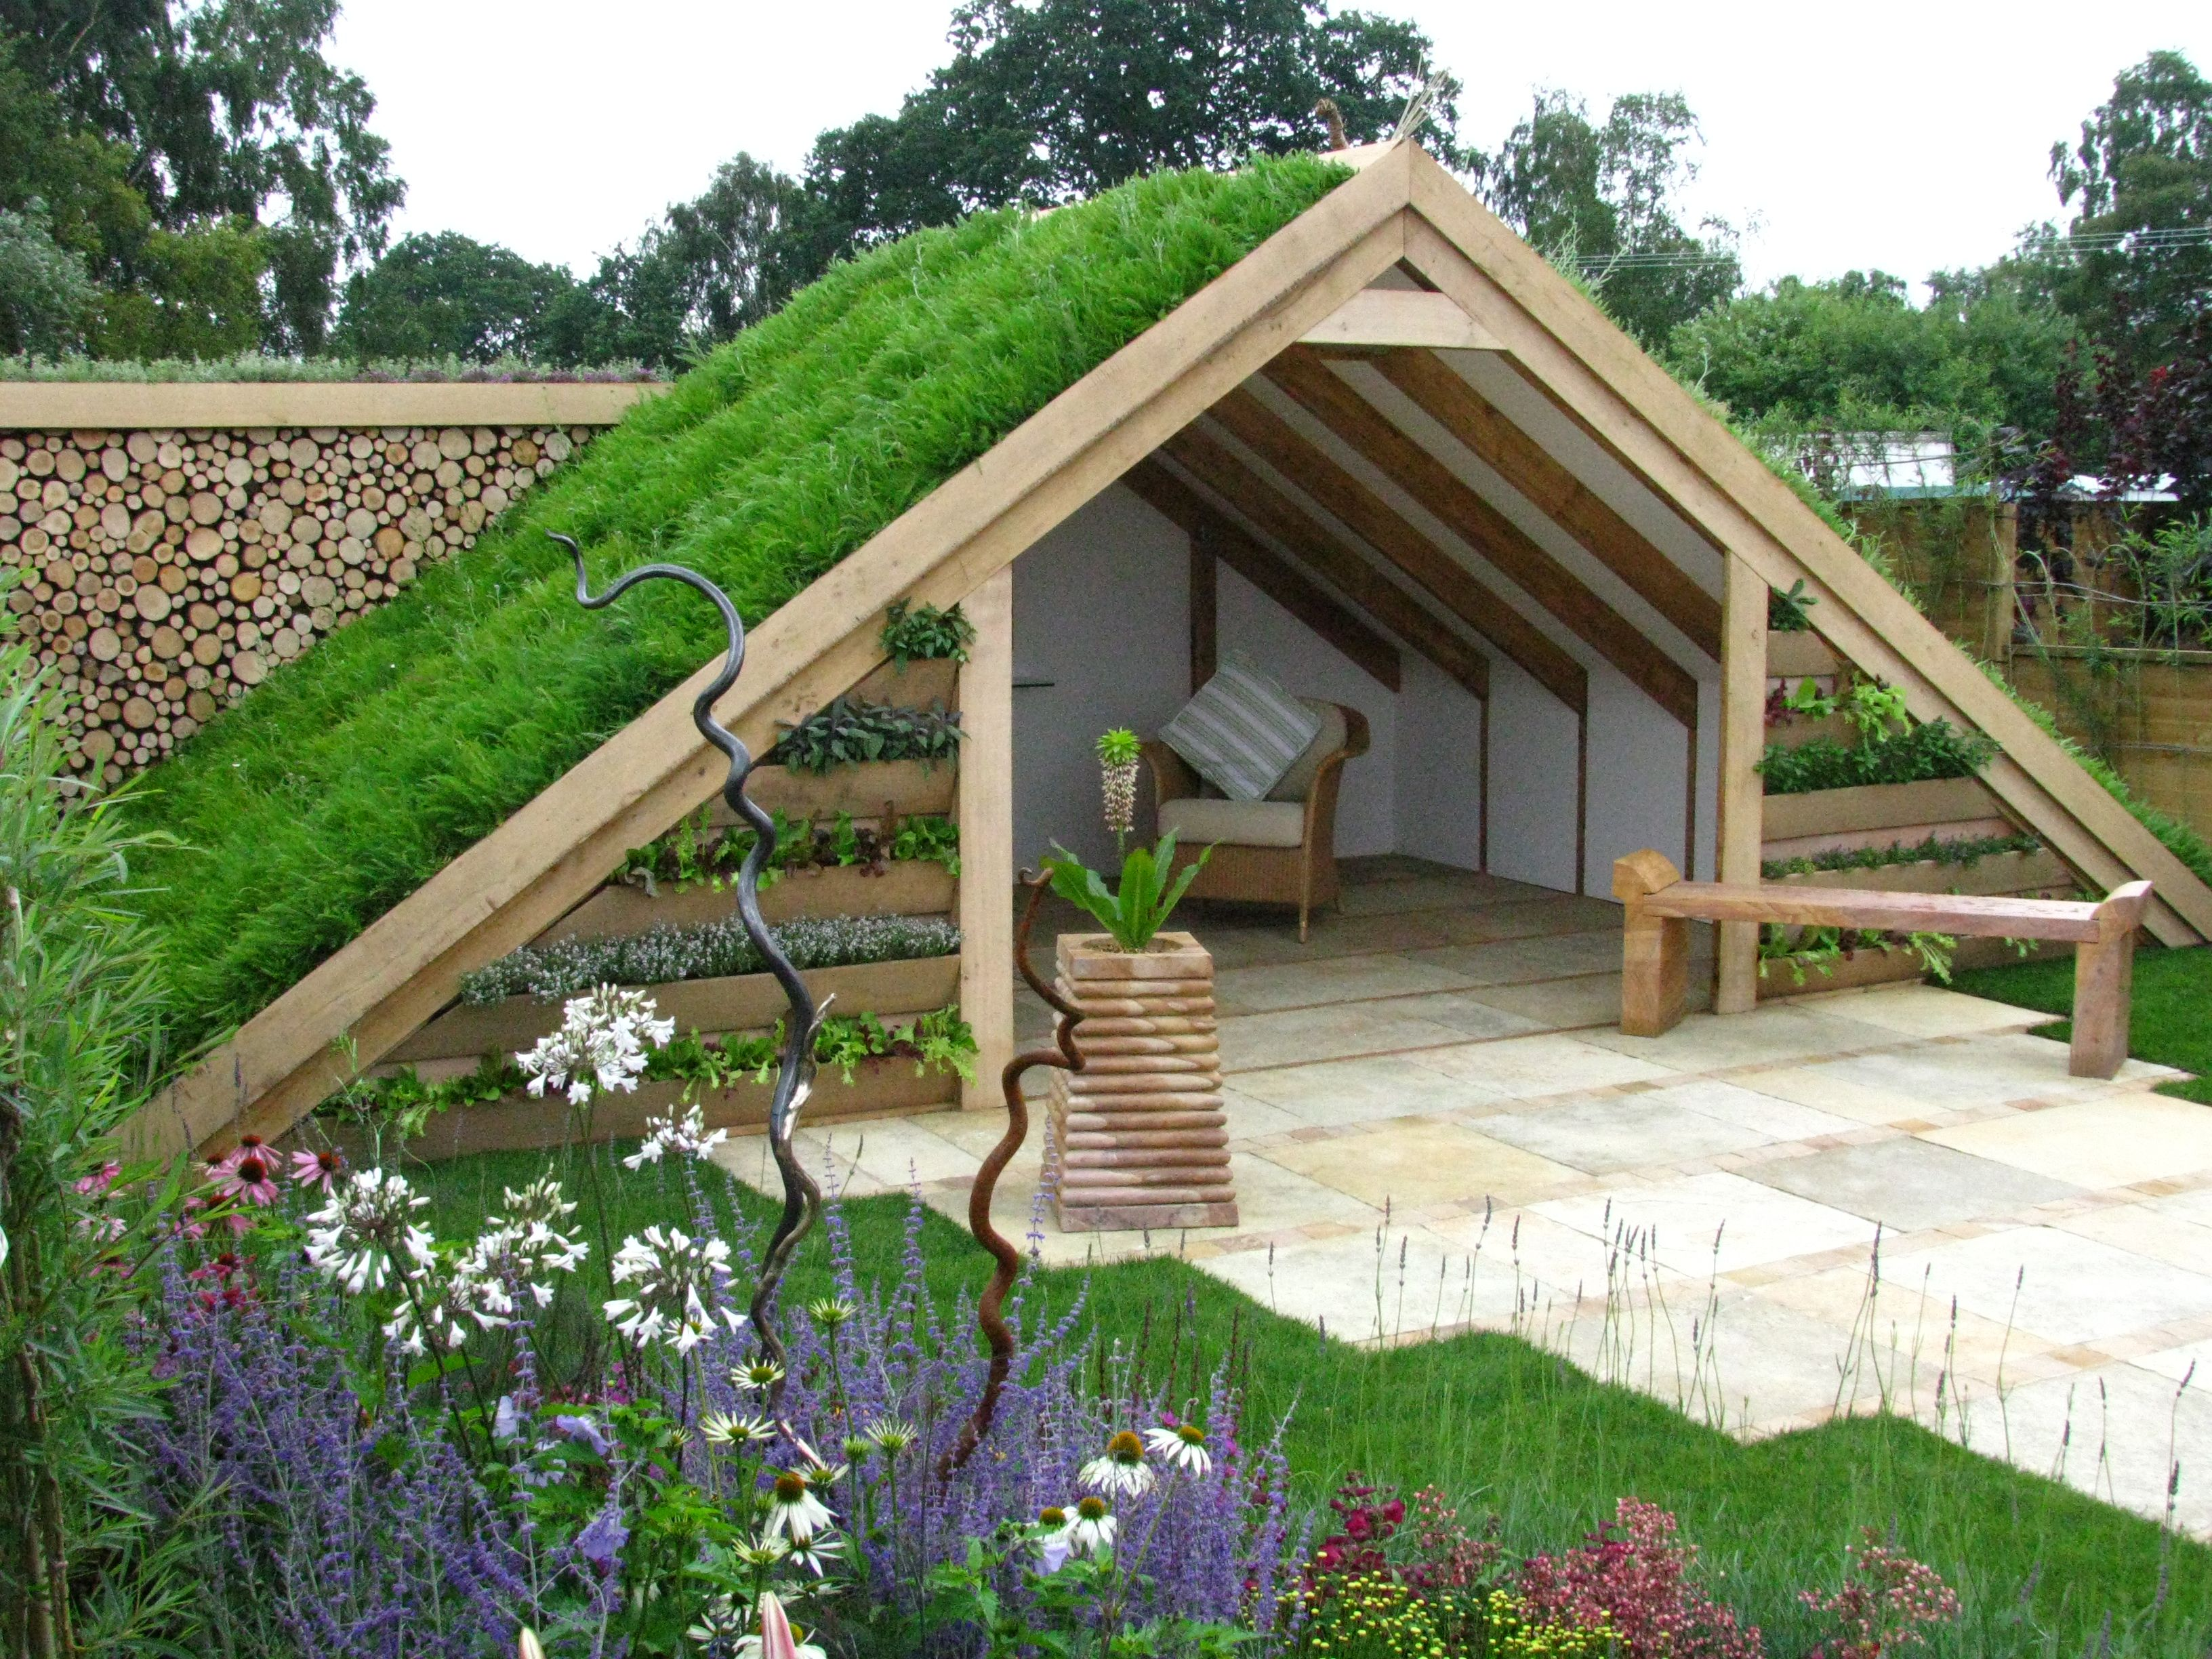 Green Roof Shed At Chasewater, Innovation Centre, Brownhills, Staffordshire  UK. Photo: Garden Shed By Thislefield Plants U0026 Design